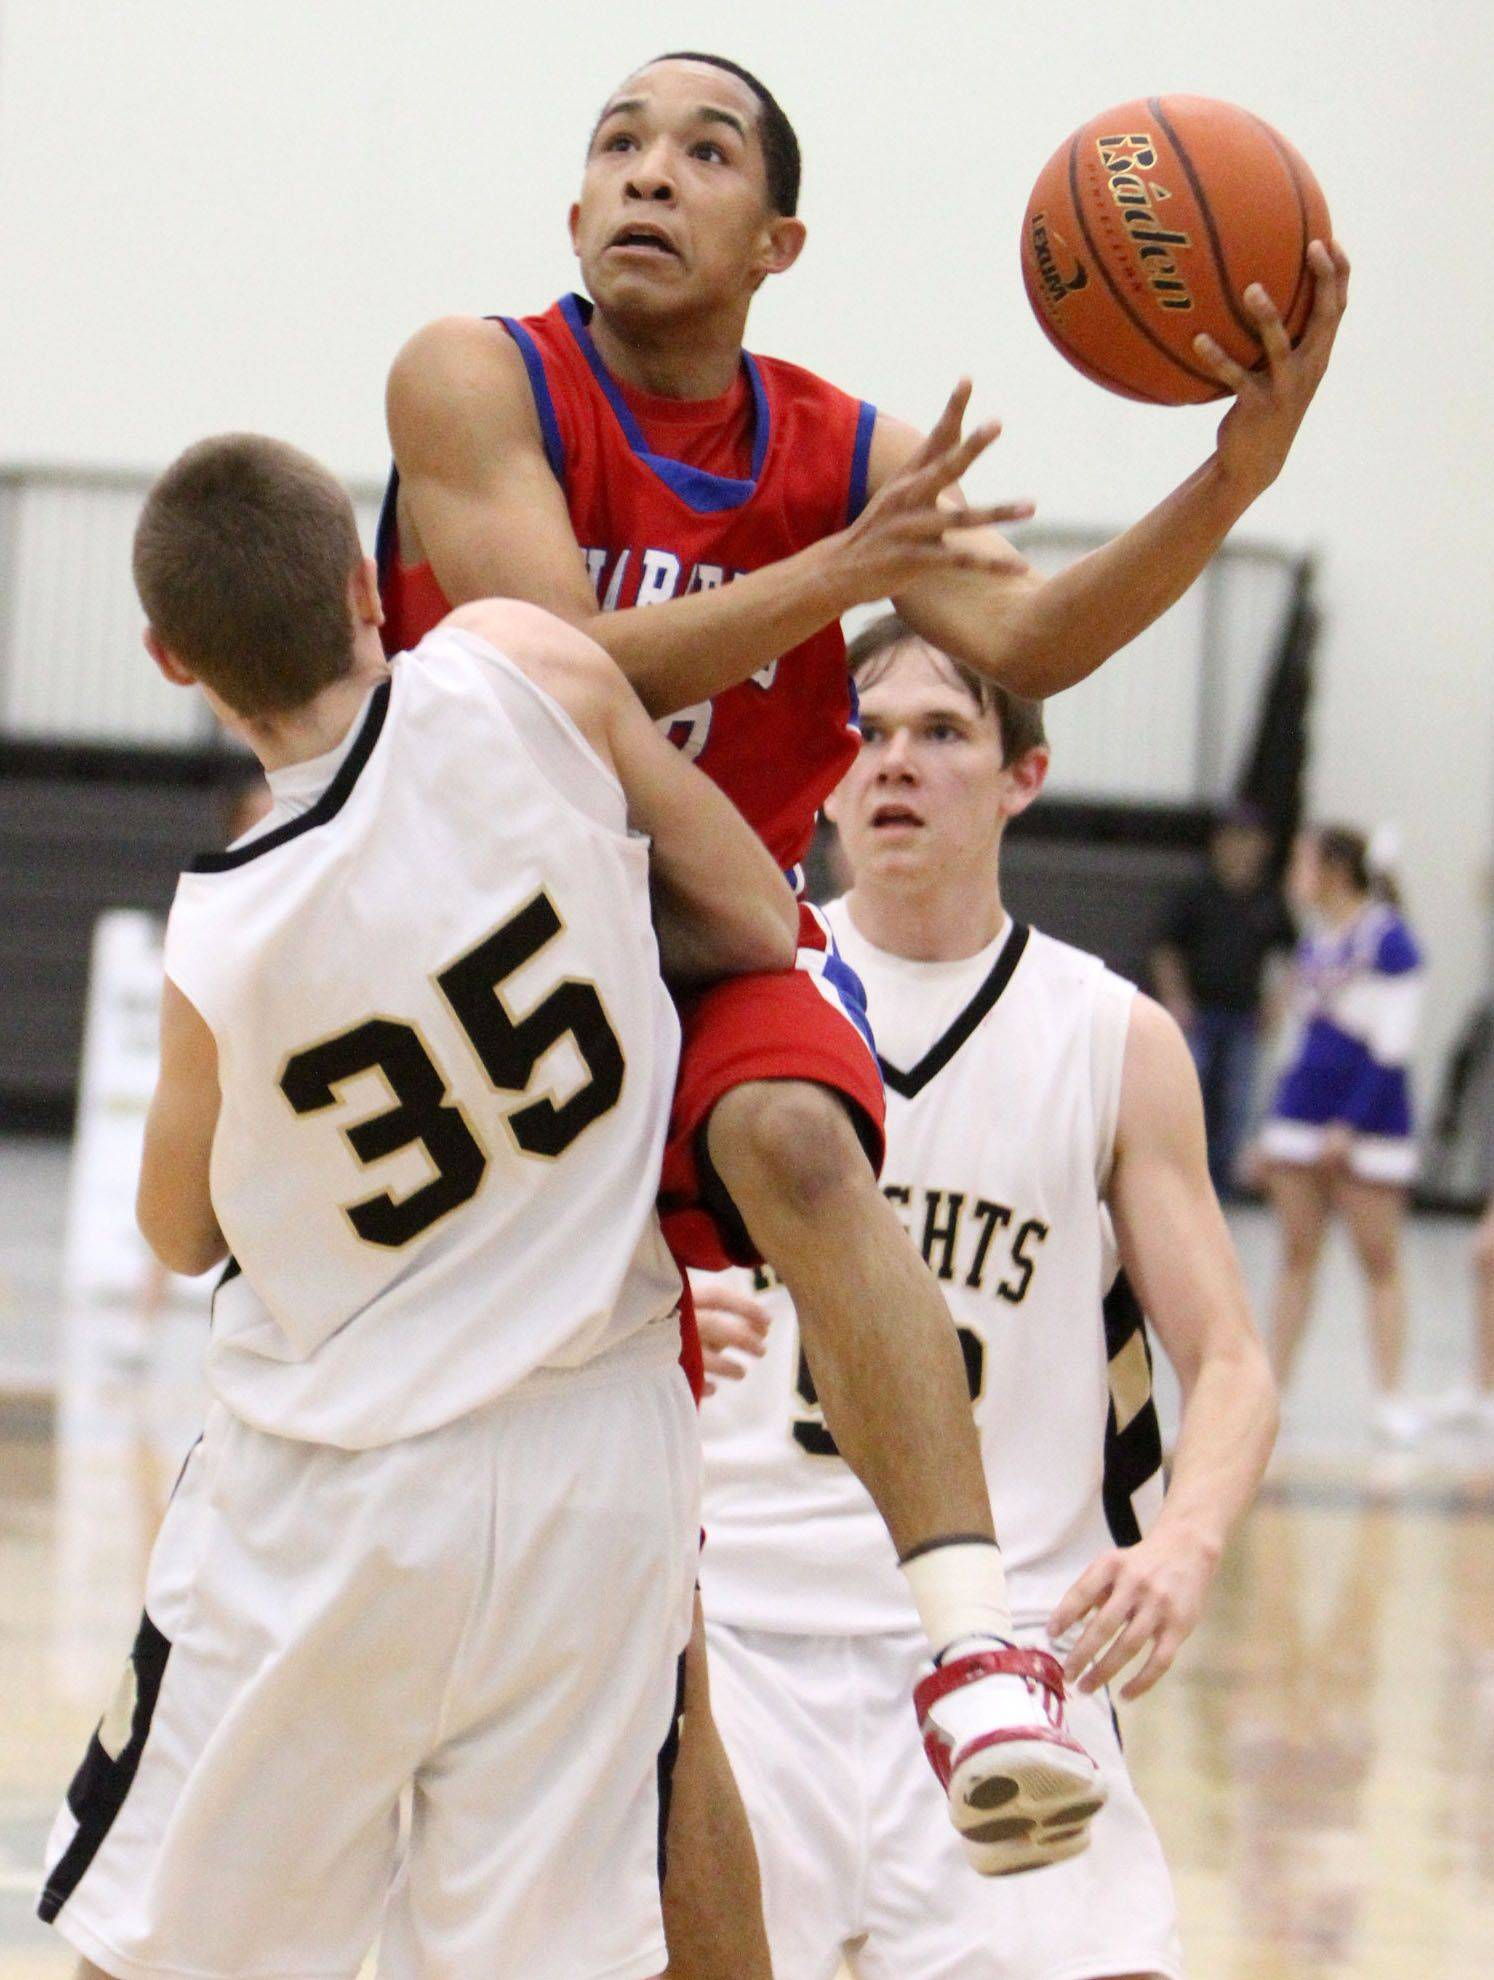 Dundee-Crown's Brandon Rodriguez drives to the basket against Grayslake North's Zack Krupp.